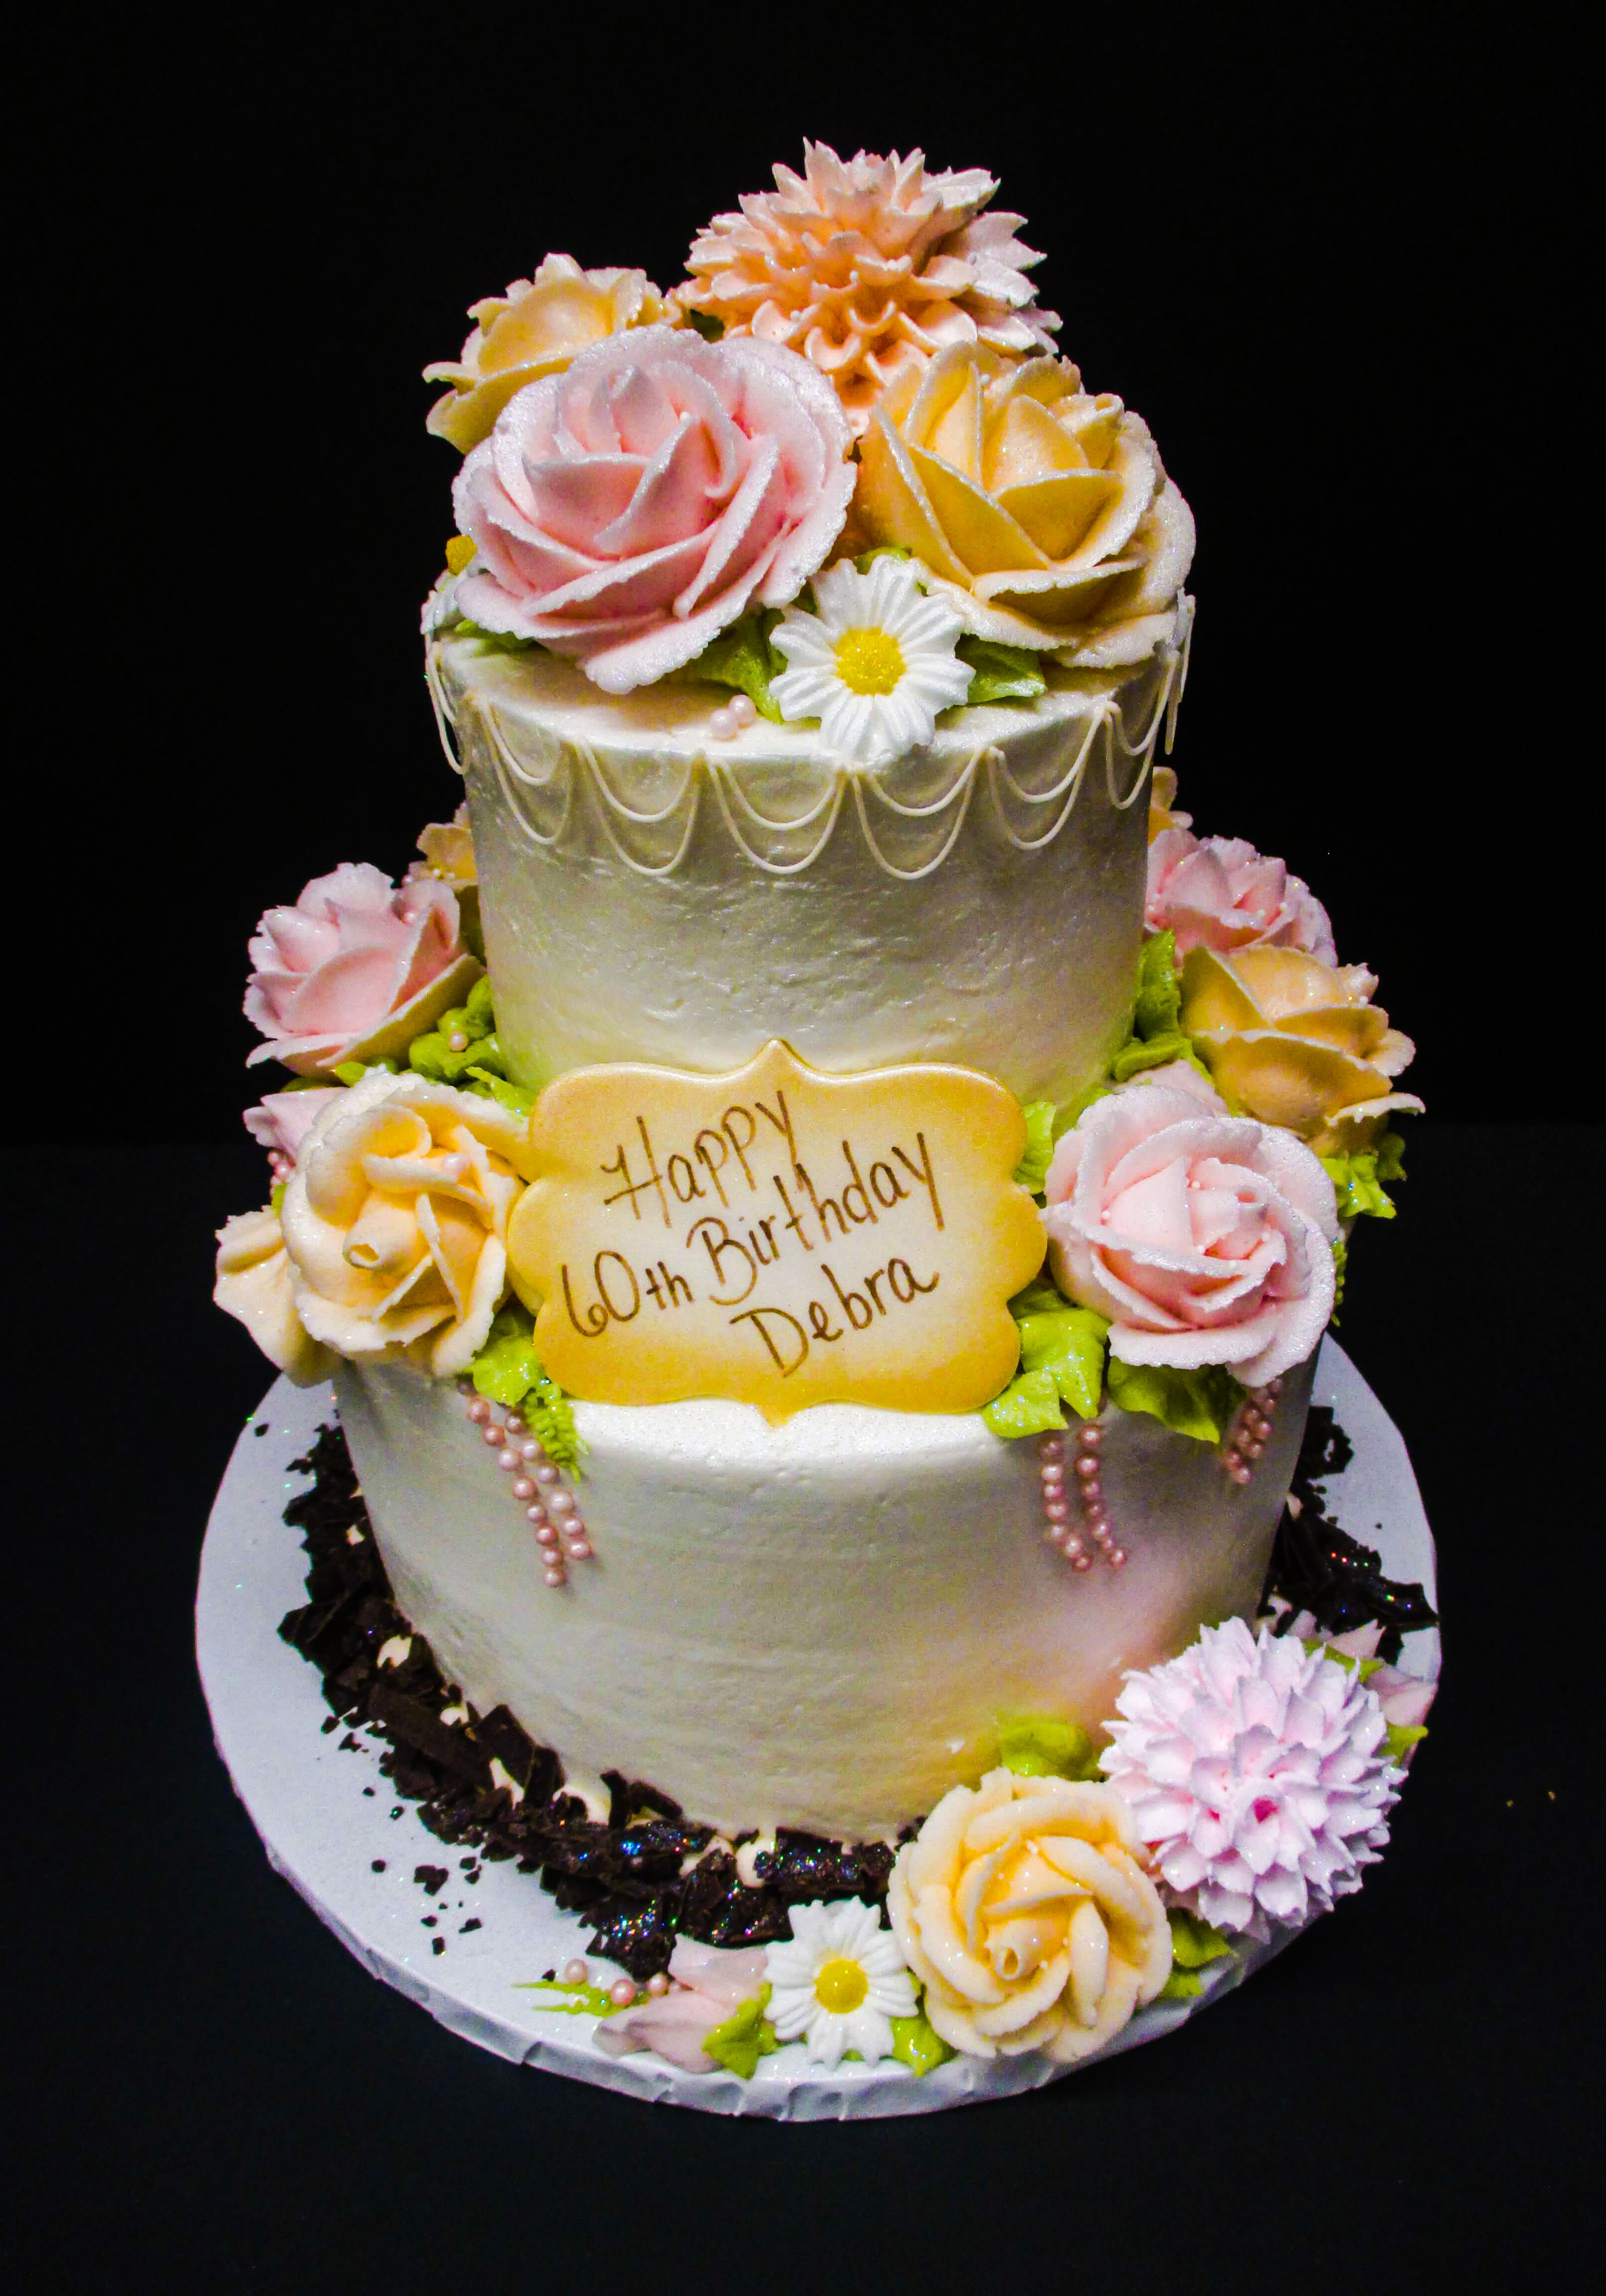 Pin on Adult Birthday Cakes